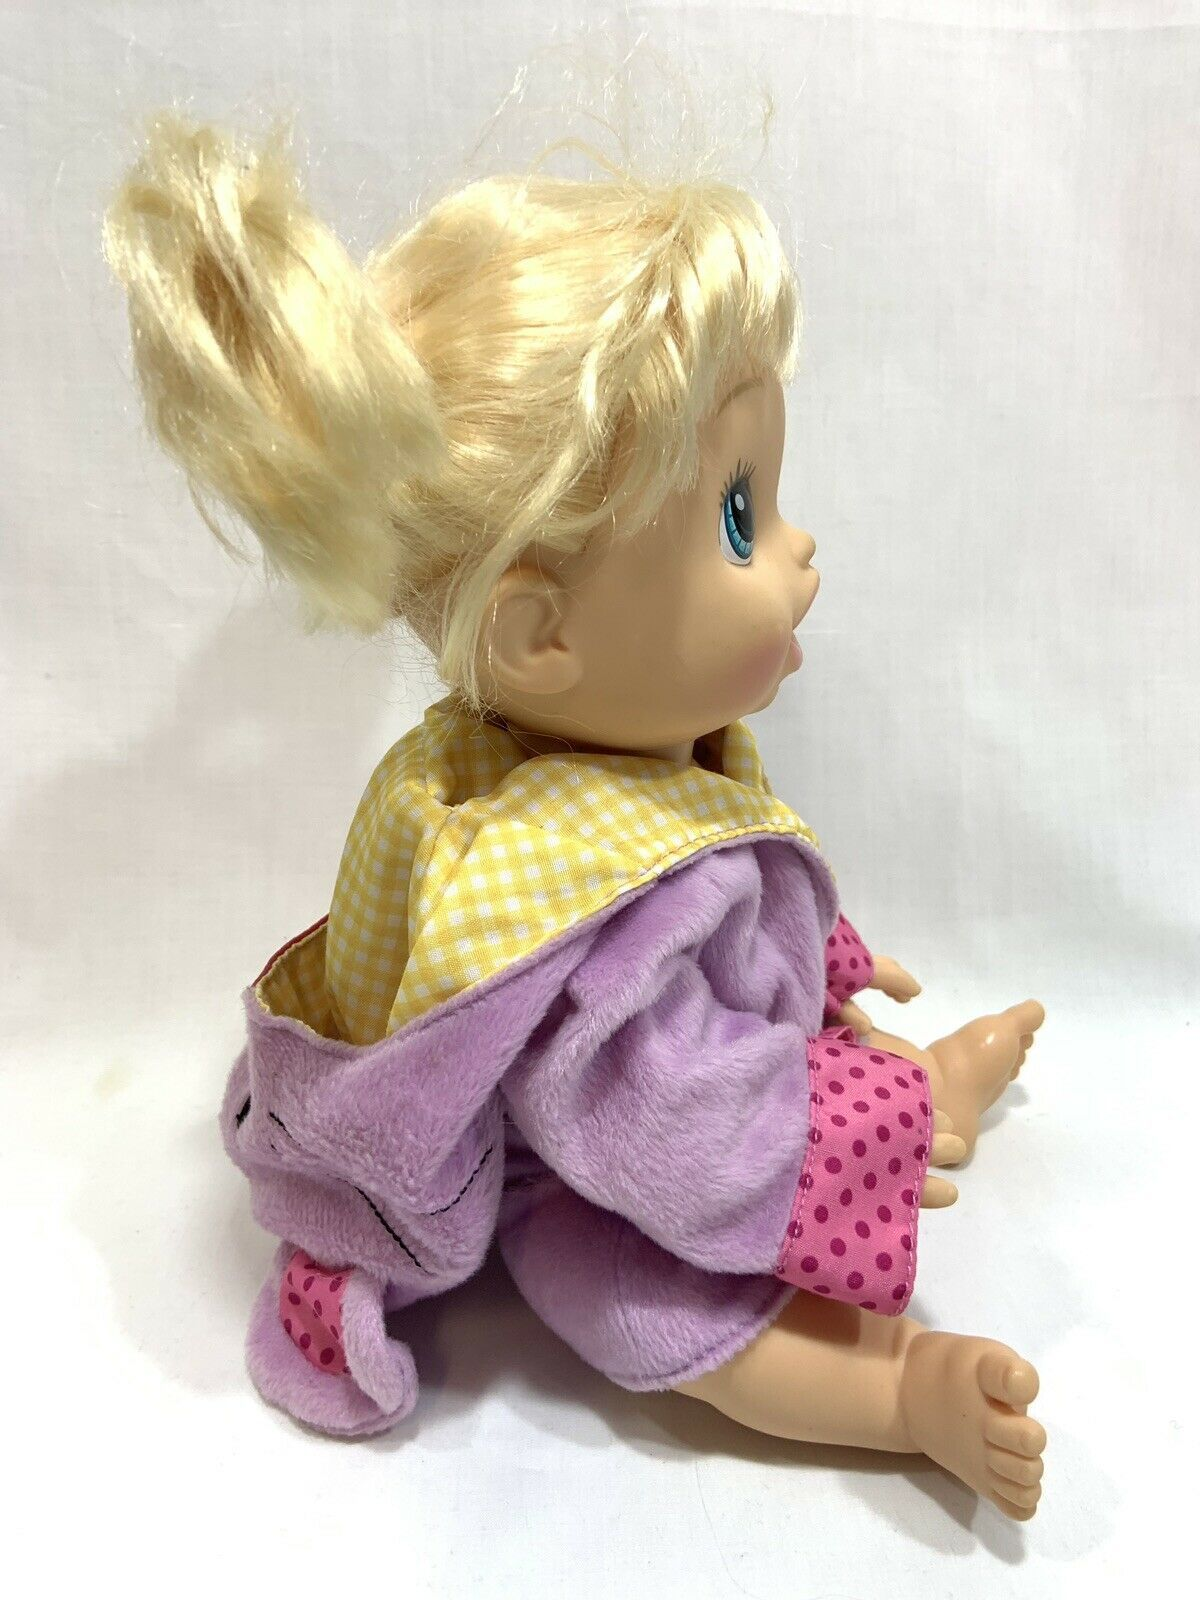 Baby Alive Hasbro 2013 Blonde Doll Interactive Talking Bilingual English Spanish image 4